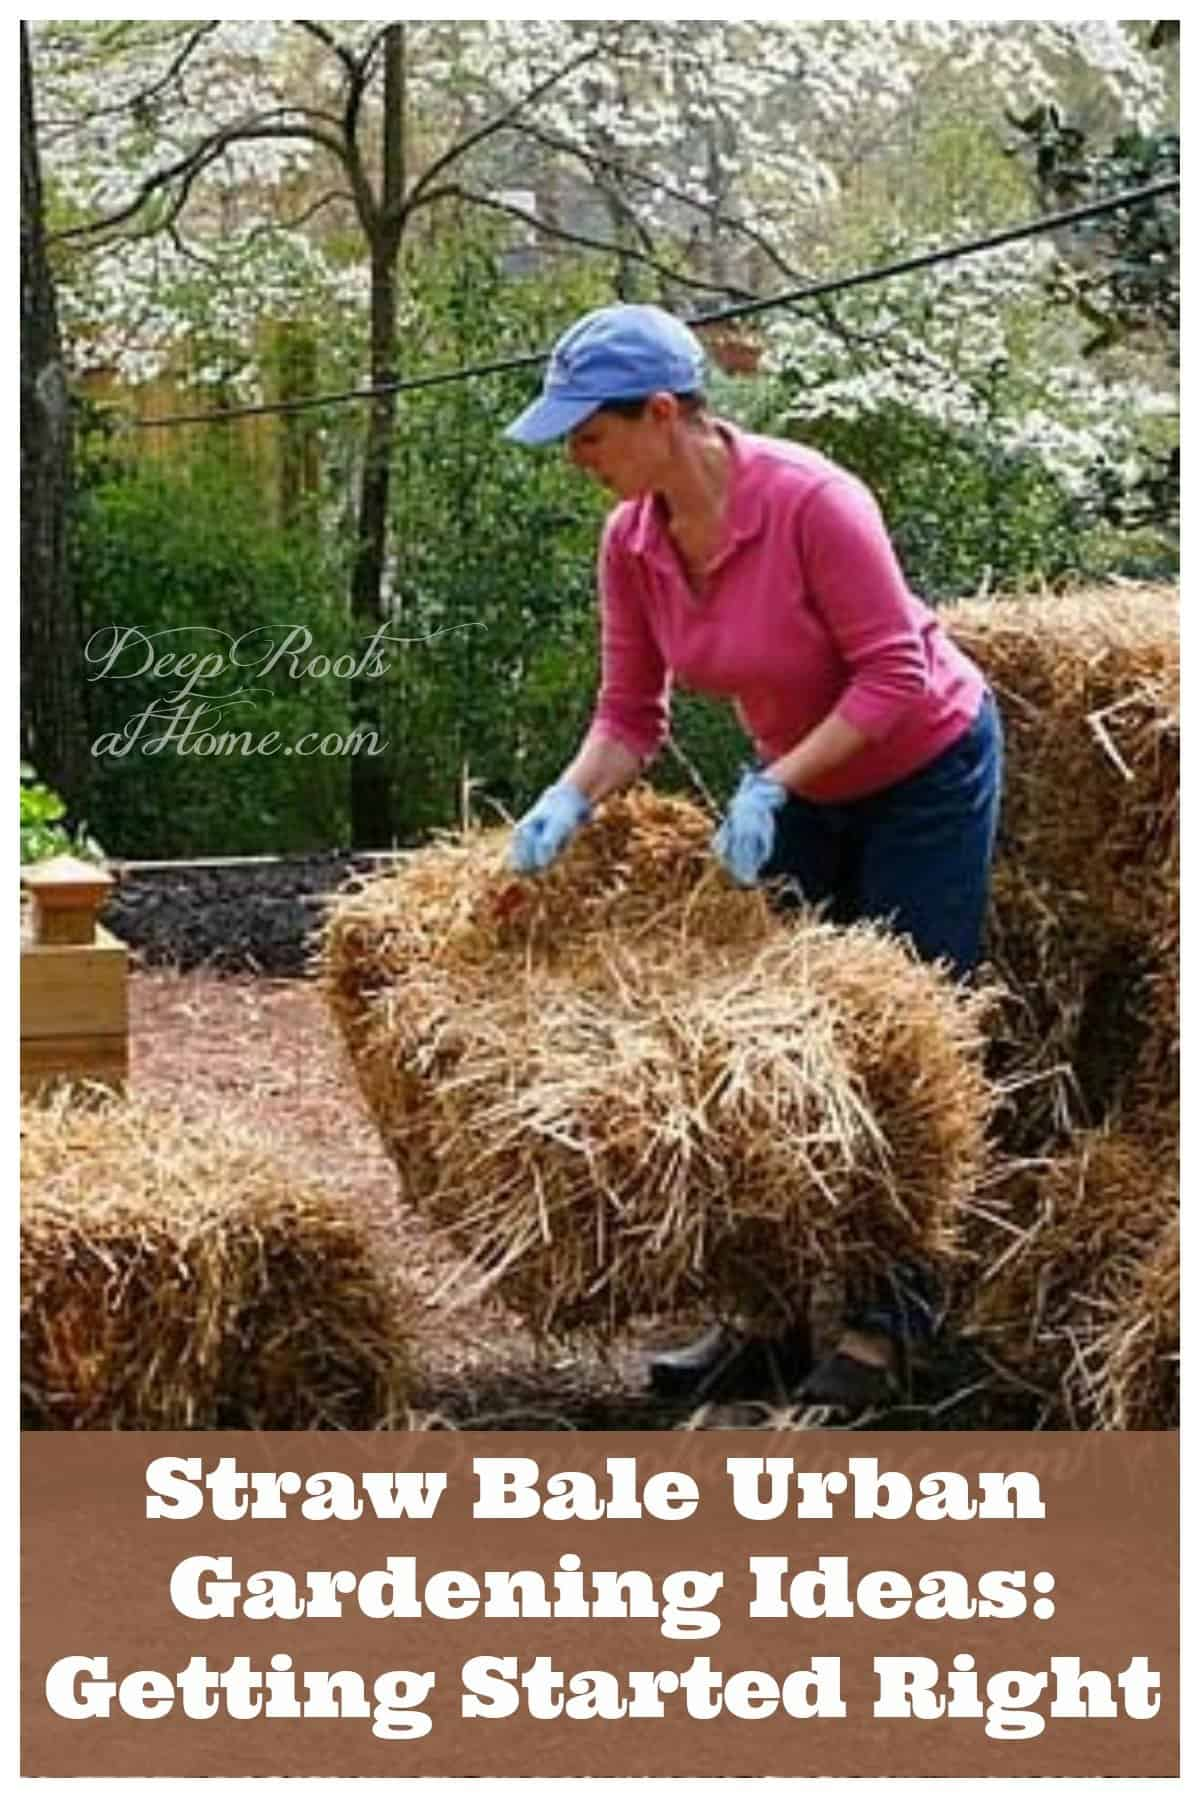 Straw Bale Urban Gardening: Ideas and Getting Started Right. small scale straw bale gardening